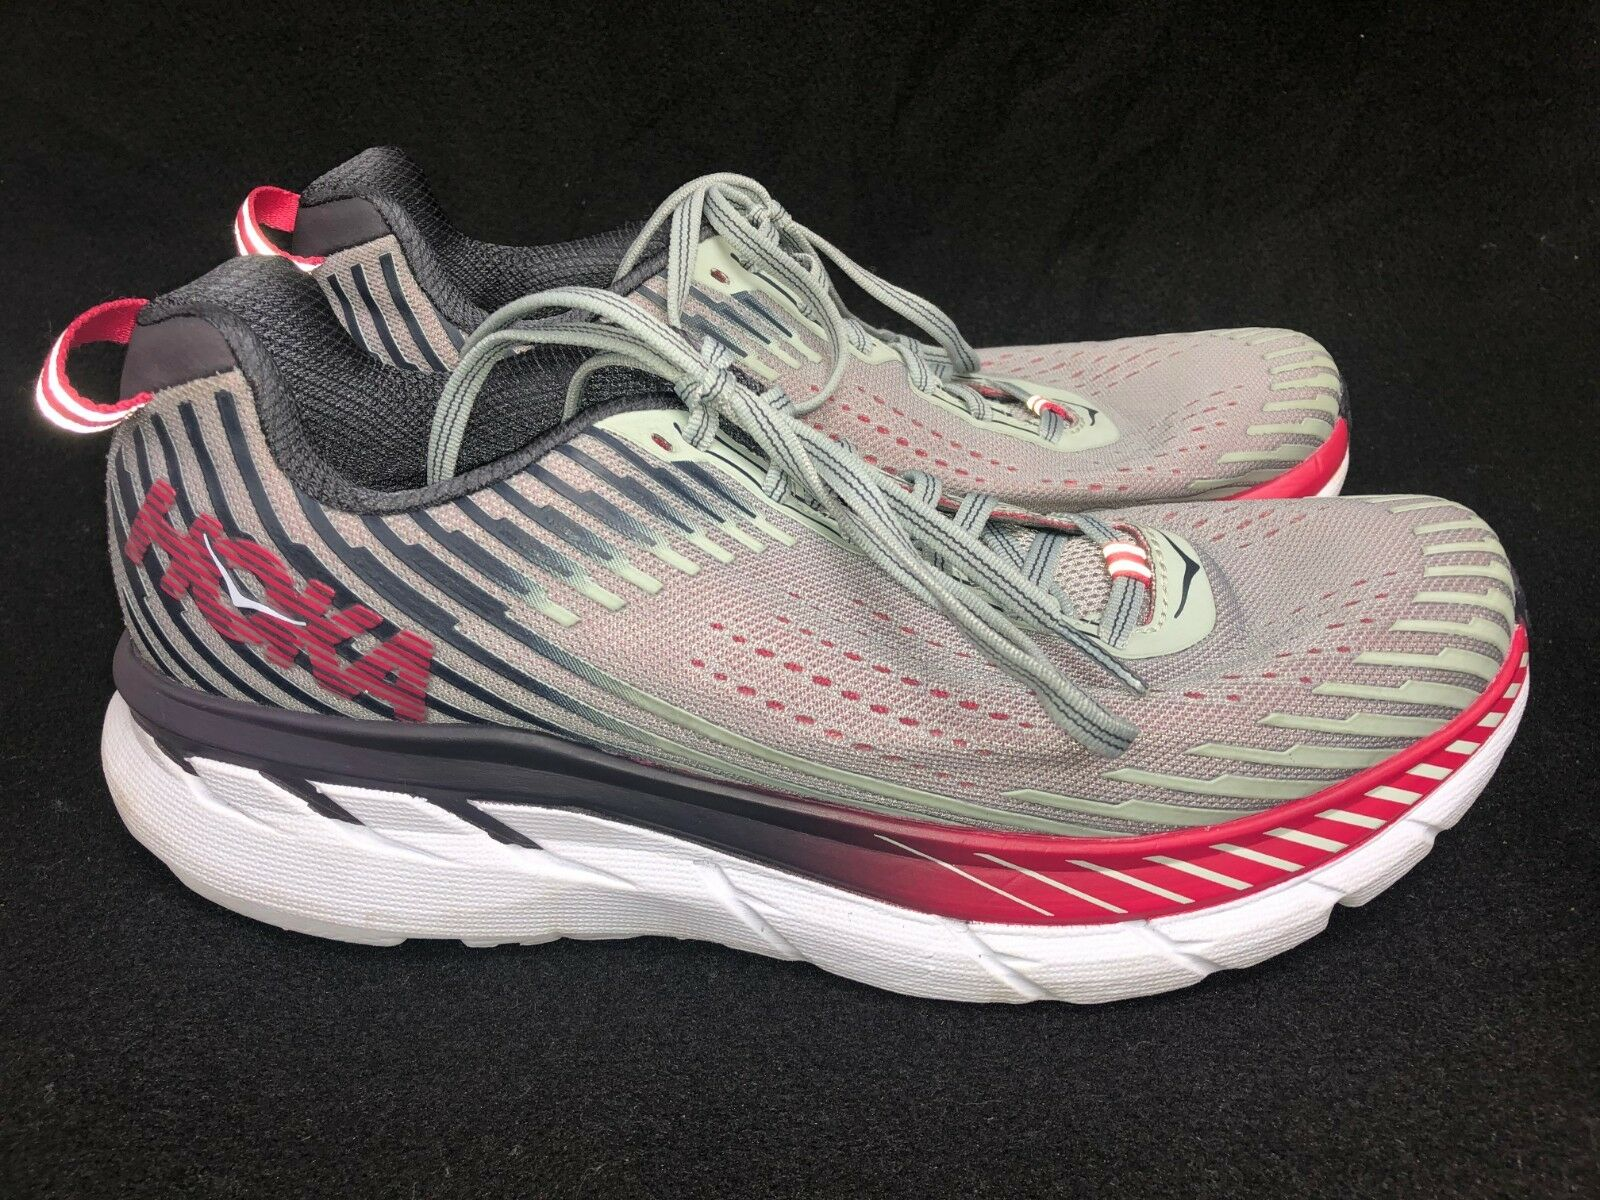 Hoka One One Clifton 5 Running Tennis shoes 1093756 Alloy Metal Athletic 10 11.5